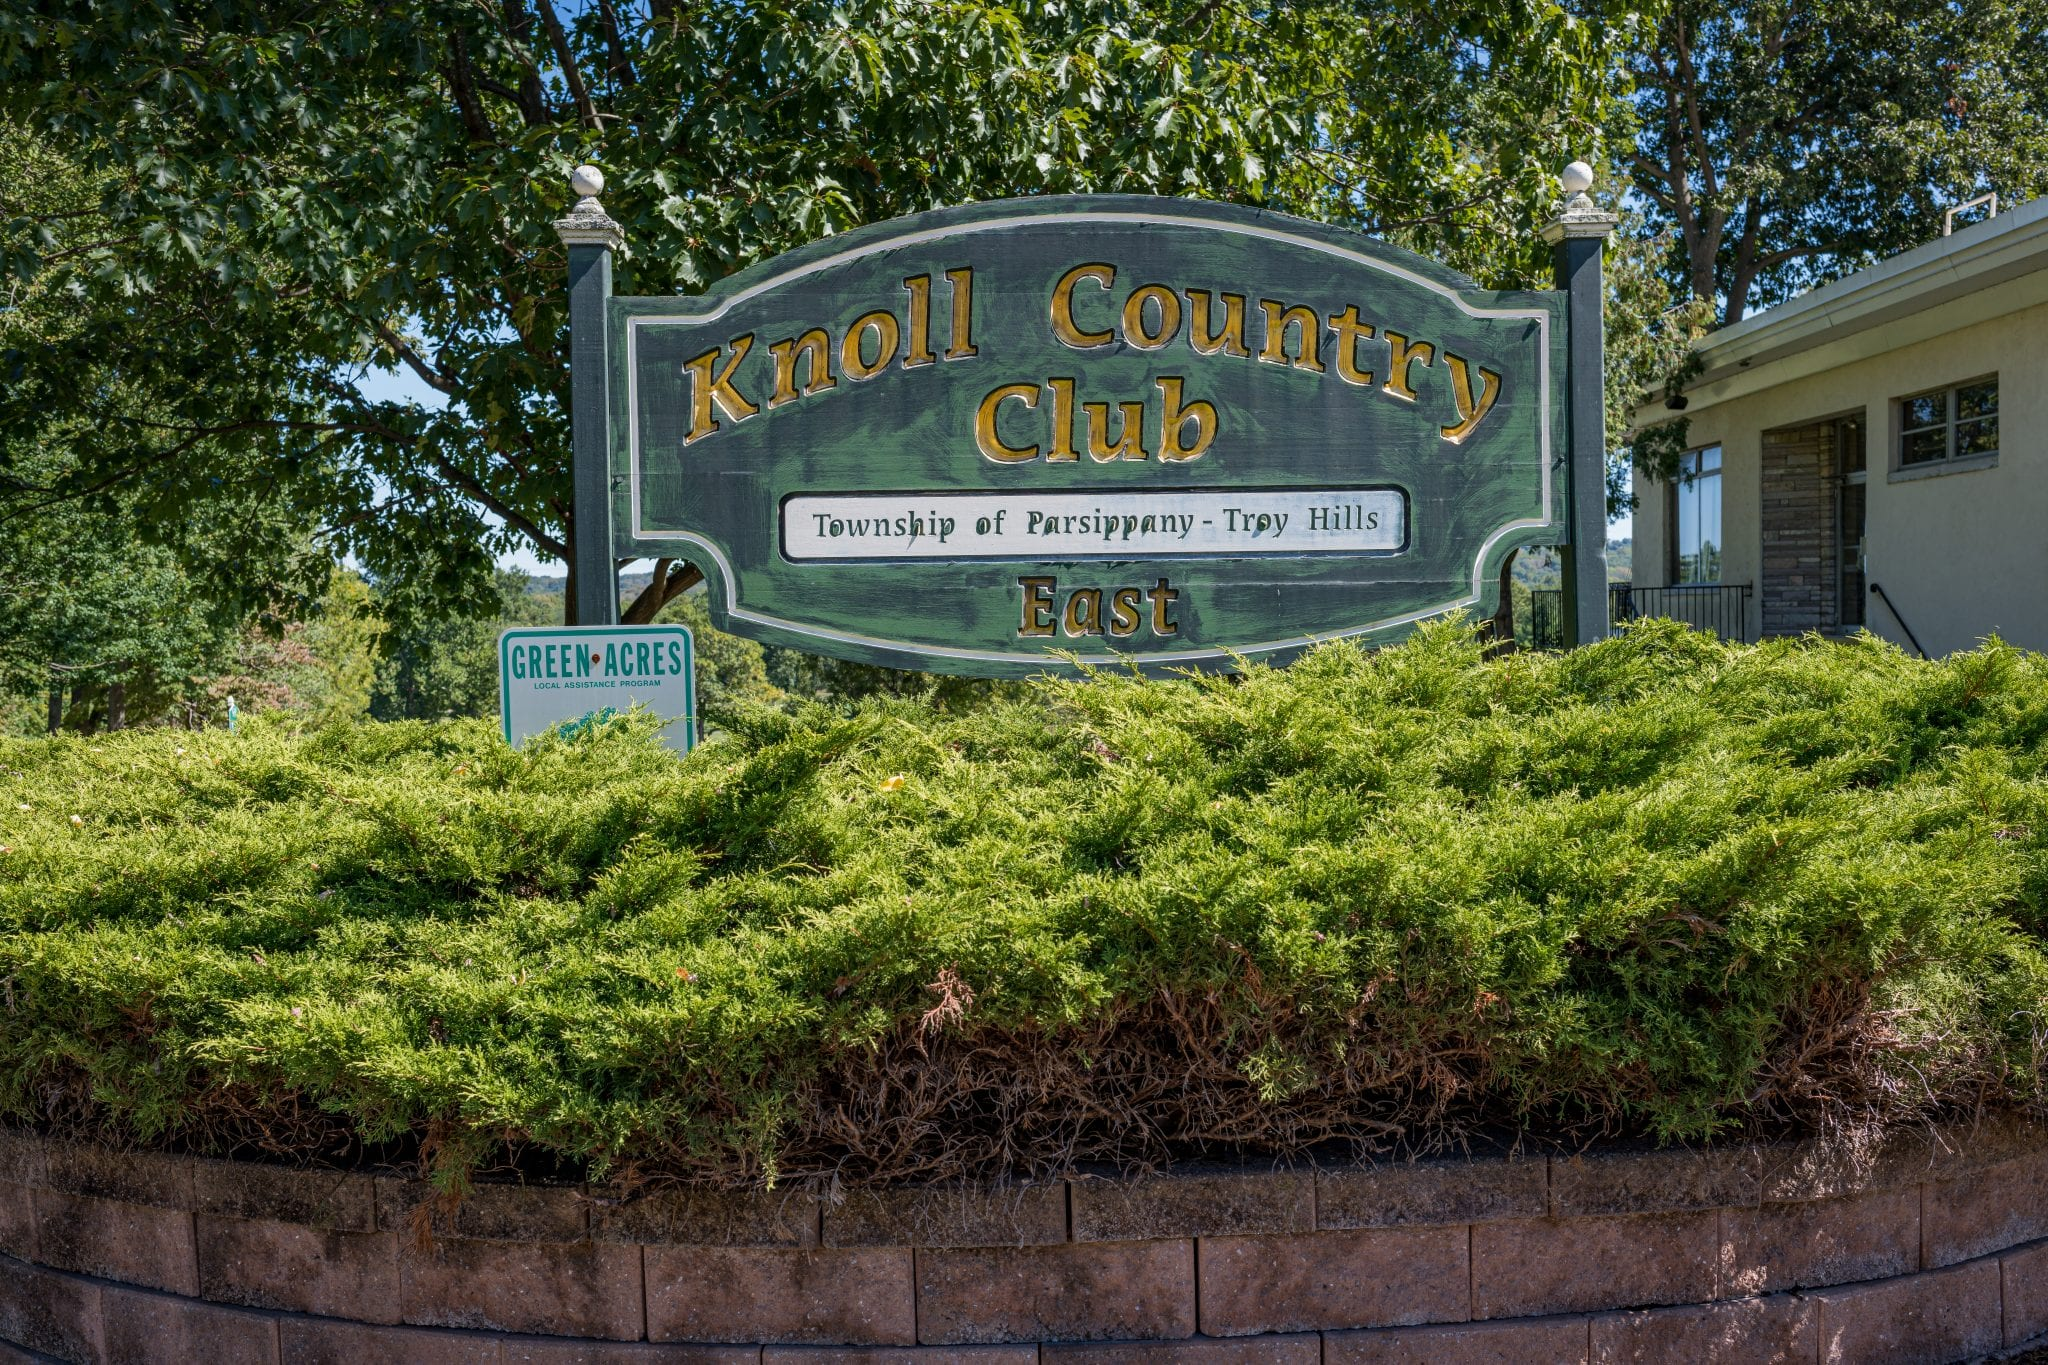 Knoll Country Club sign